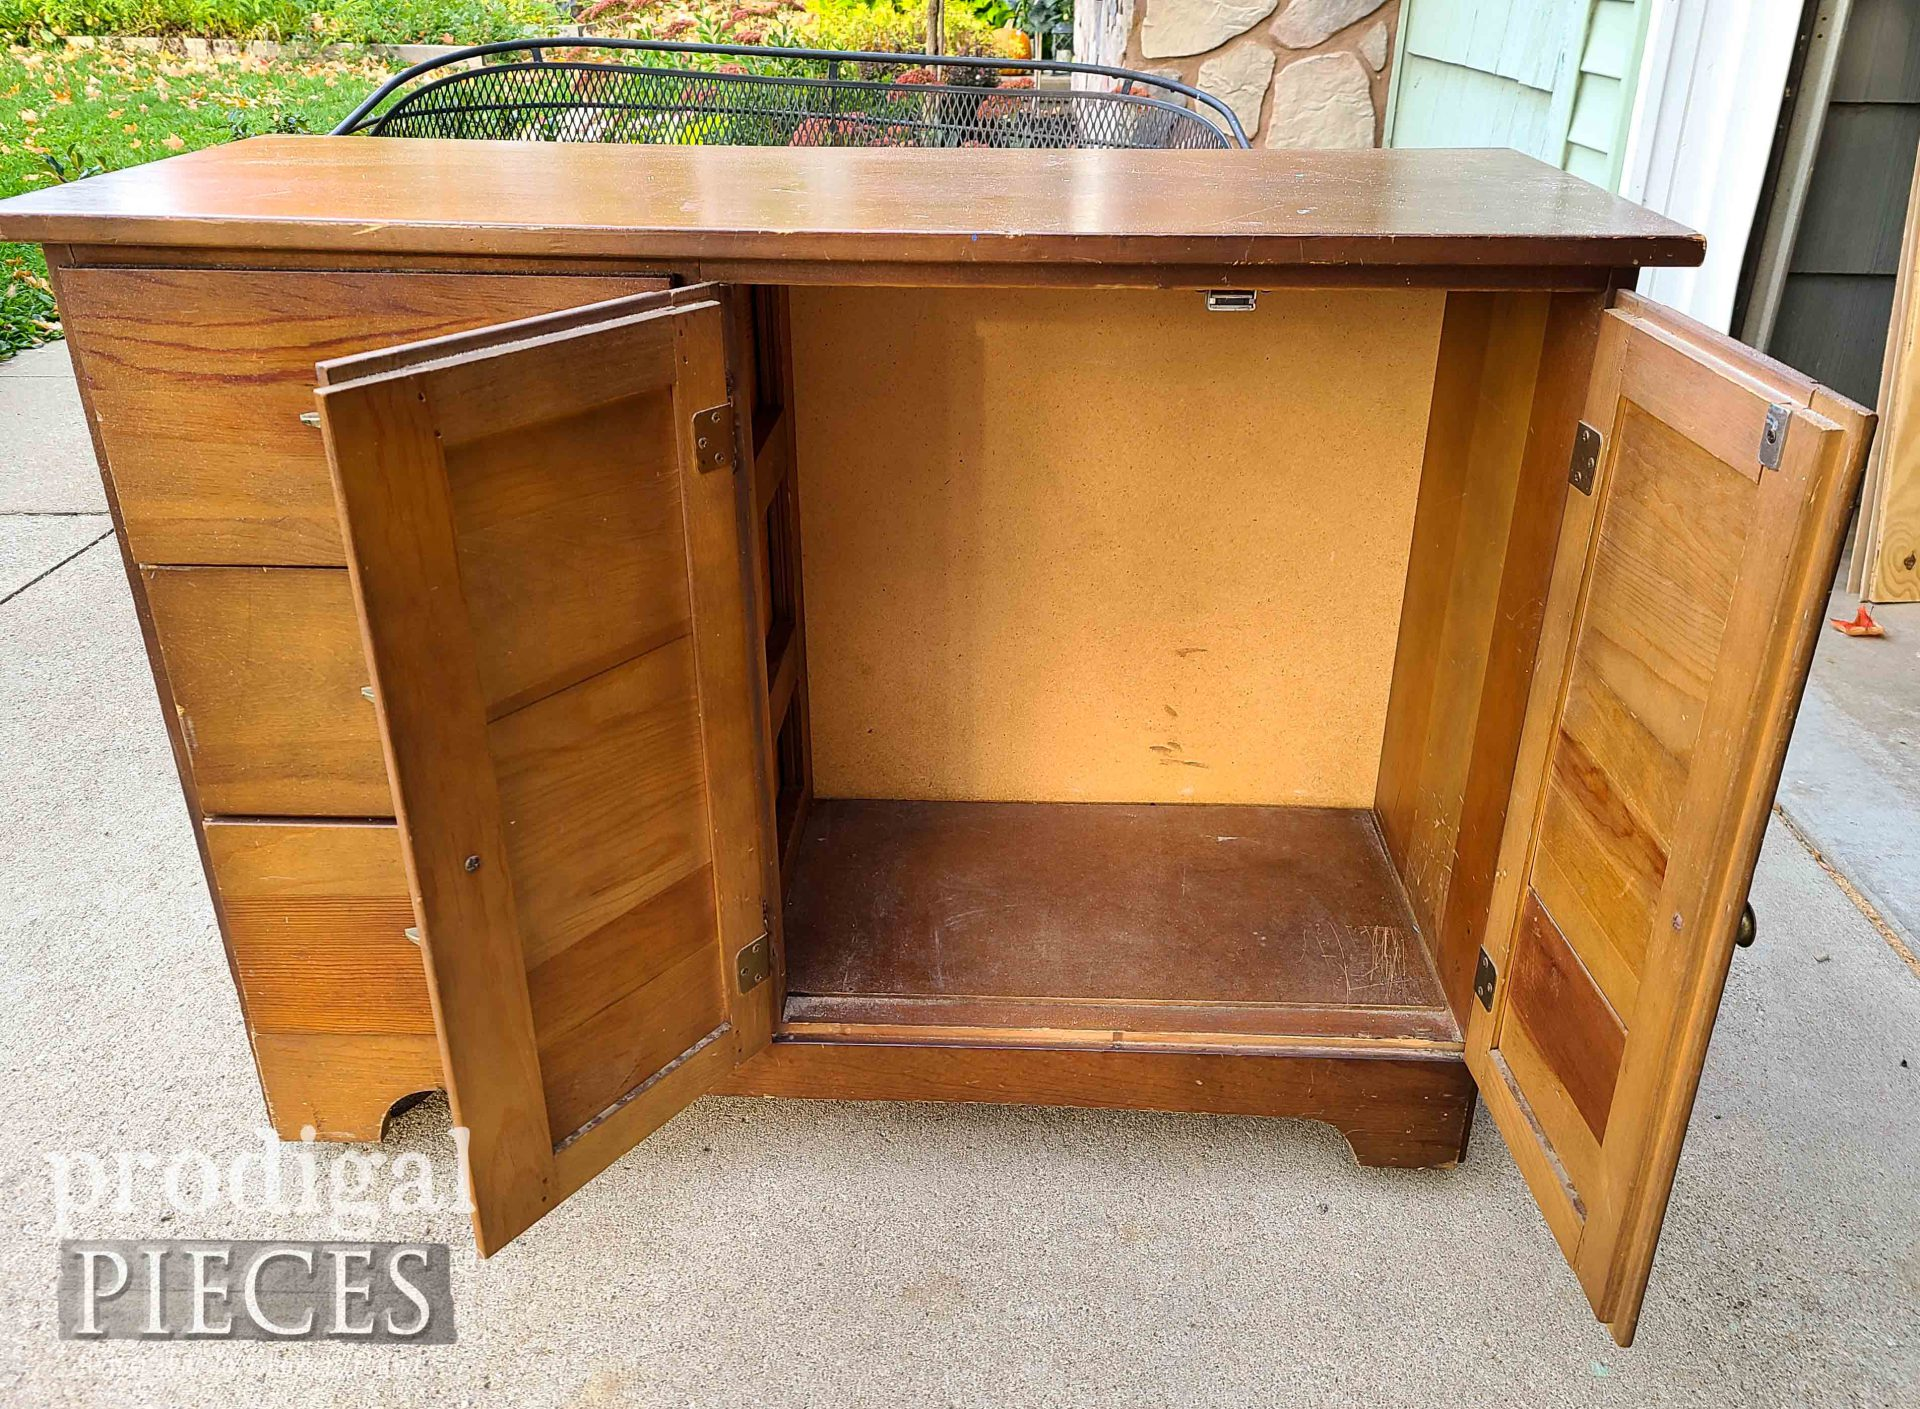 Open Cabinet Before DIY Coffee Bar | prodigalpieces.com